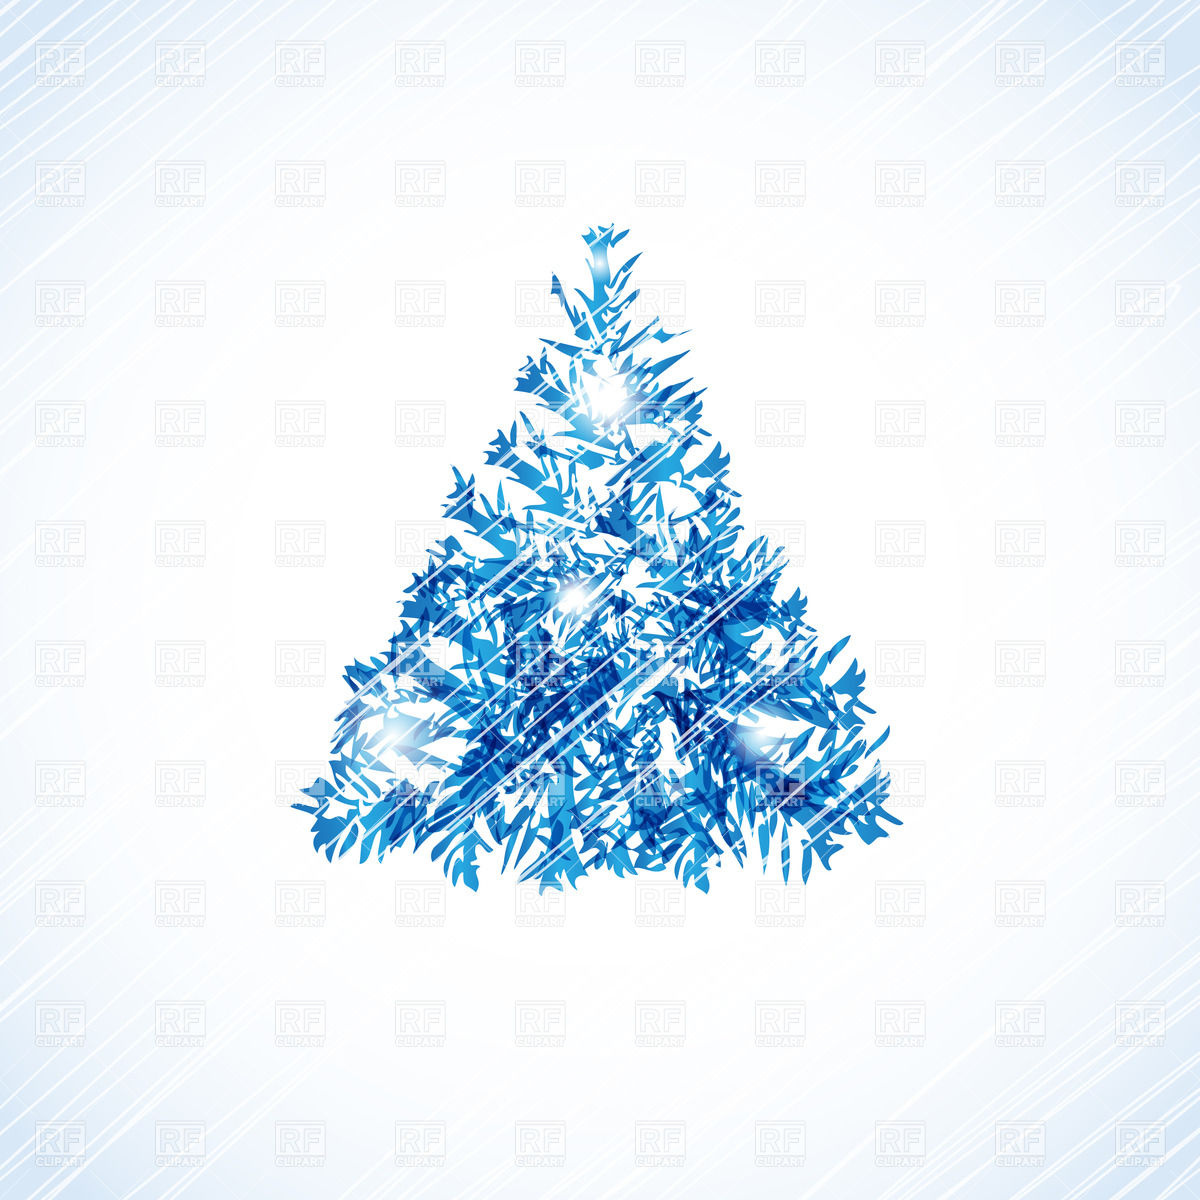 Abstract christmas tree made of scratches and scribbles Stock Vector Image.